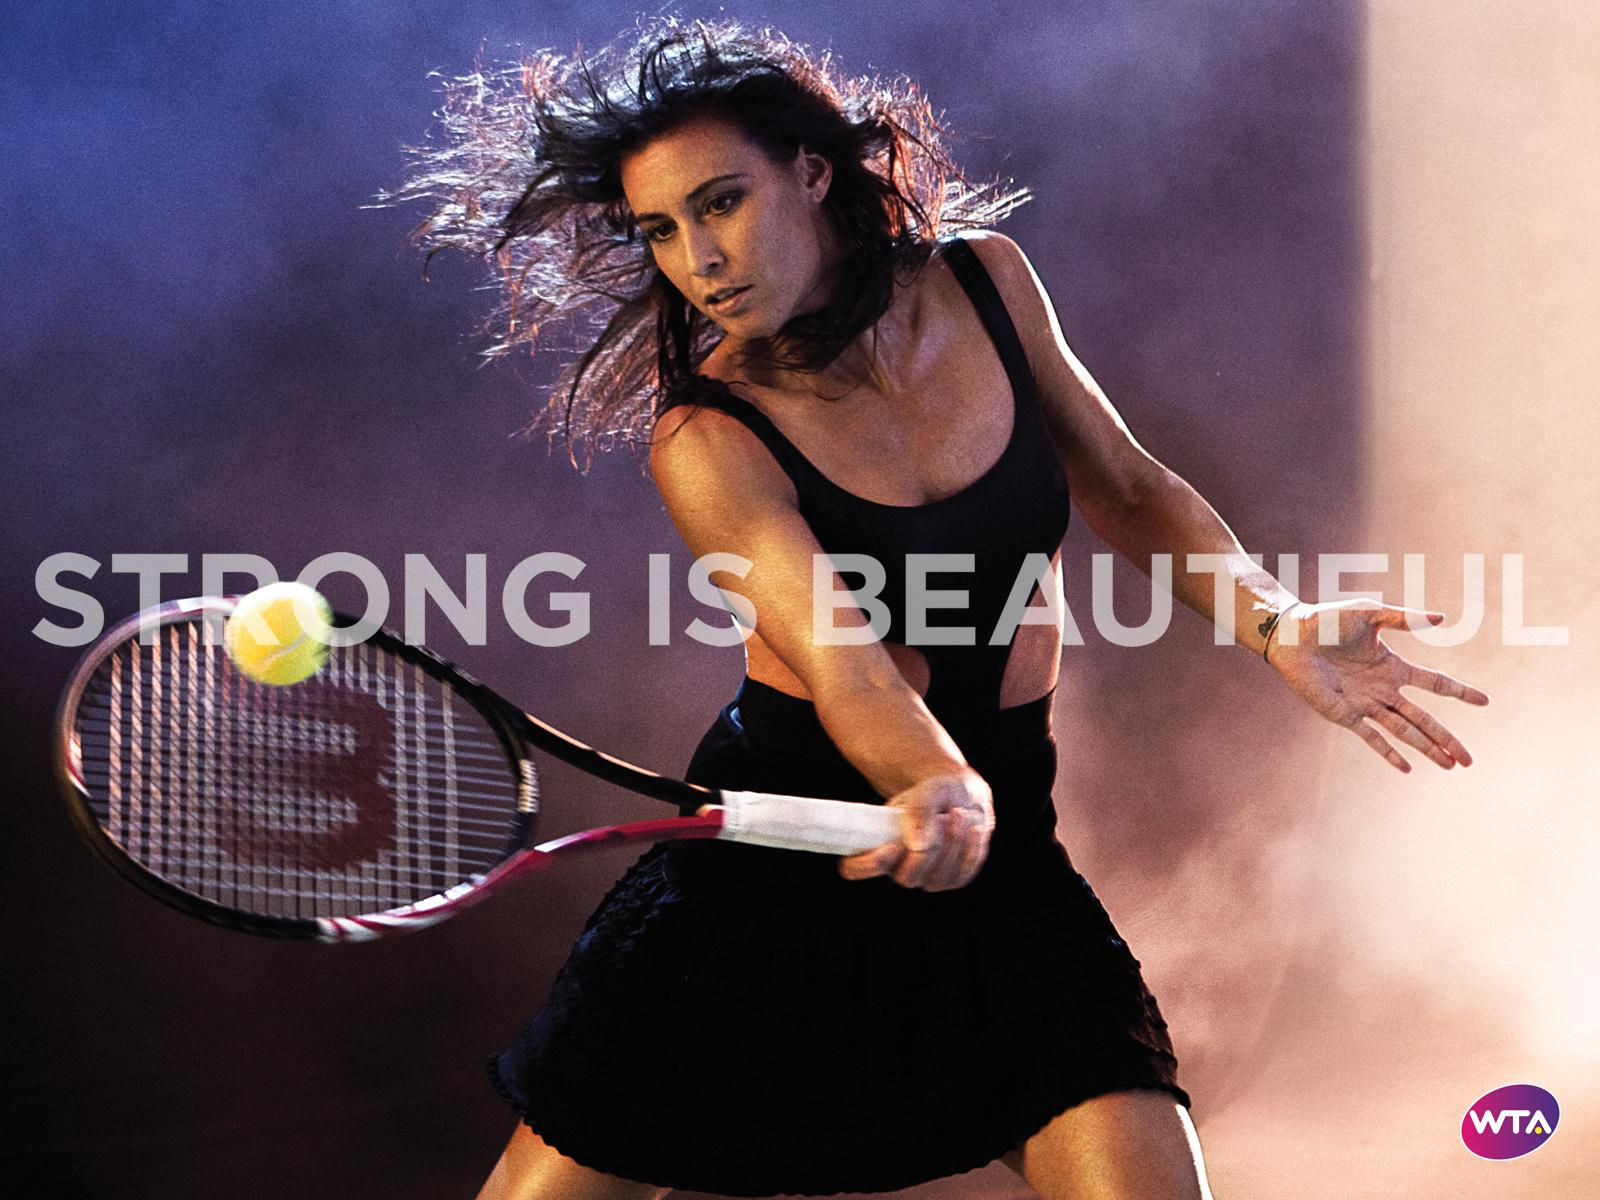 Douglas Dick Wallpapers Flavia Pennetta in Strong Is Beautiful WTA Wallpaper